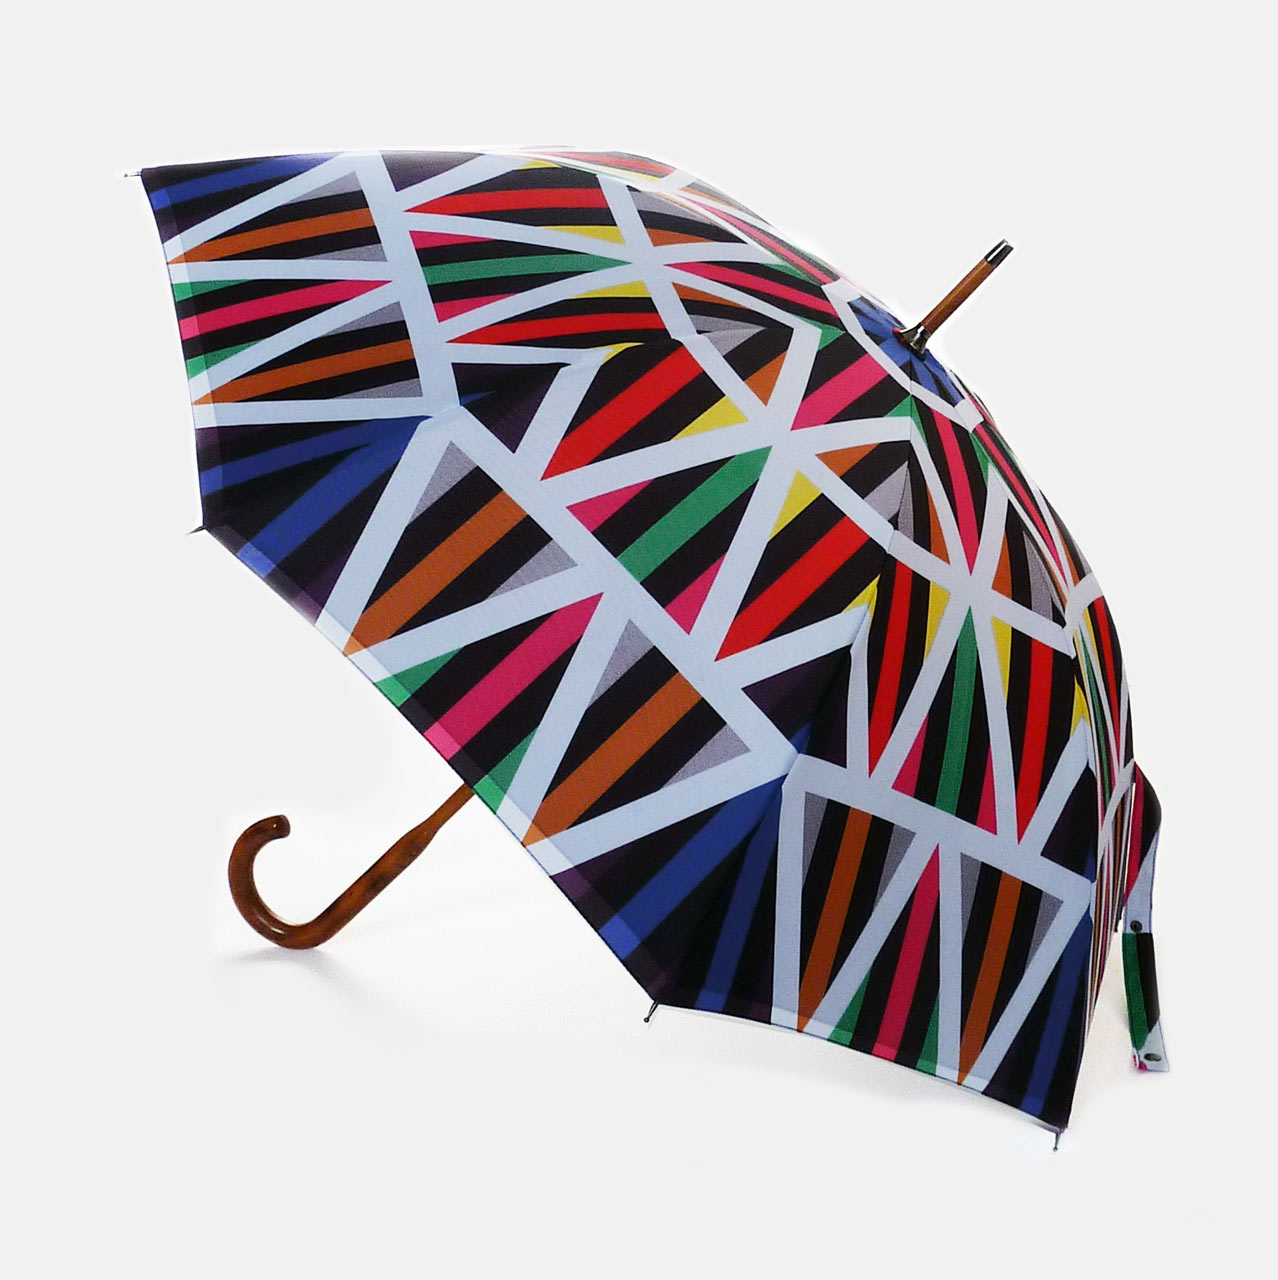 DavidDavid-Walking-Stick-Umbrella-1-U8